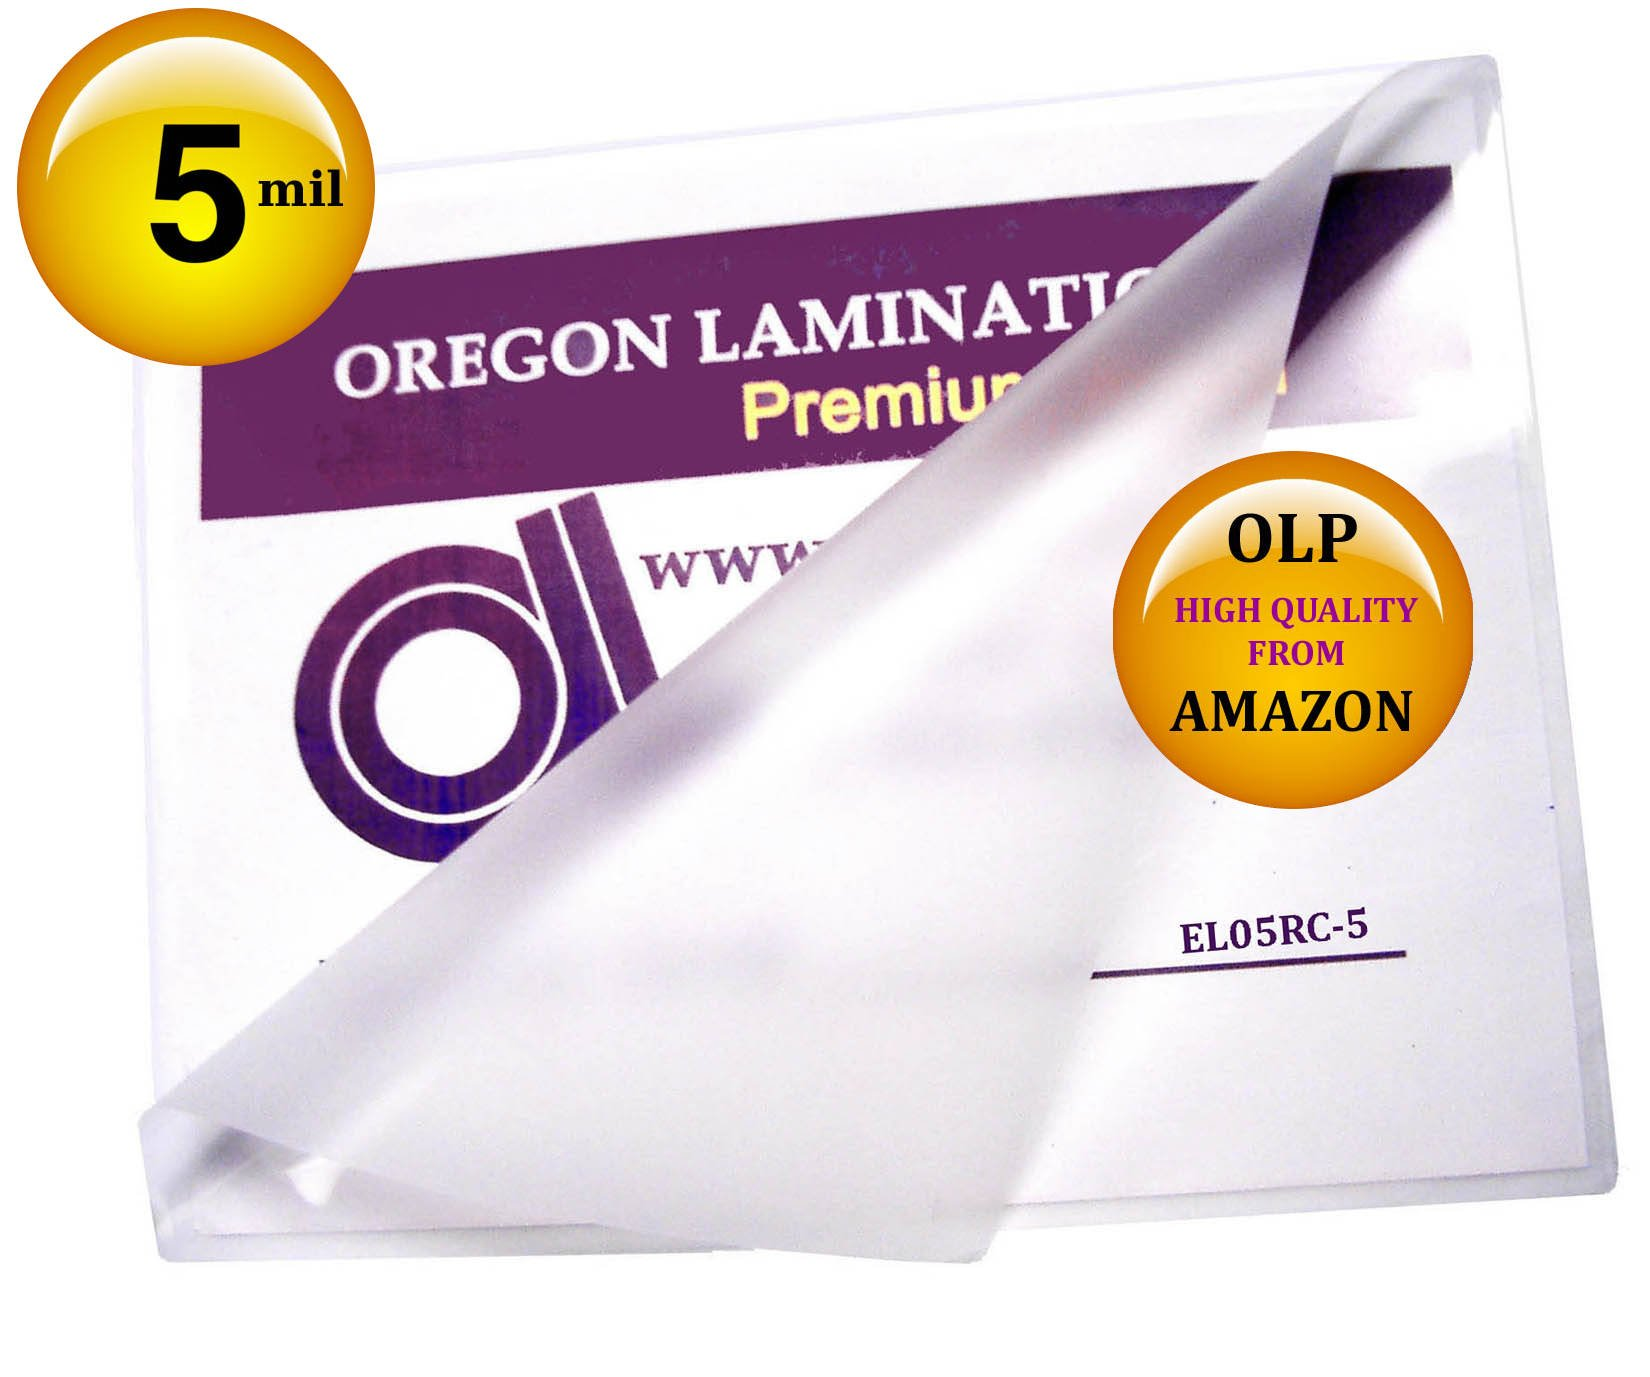 Oregon Laminations Premium Menu size Hot Laminating Pouches 5 Mil 12 x 18 (Pack of 500) Clear by Oregon Lamination Premium